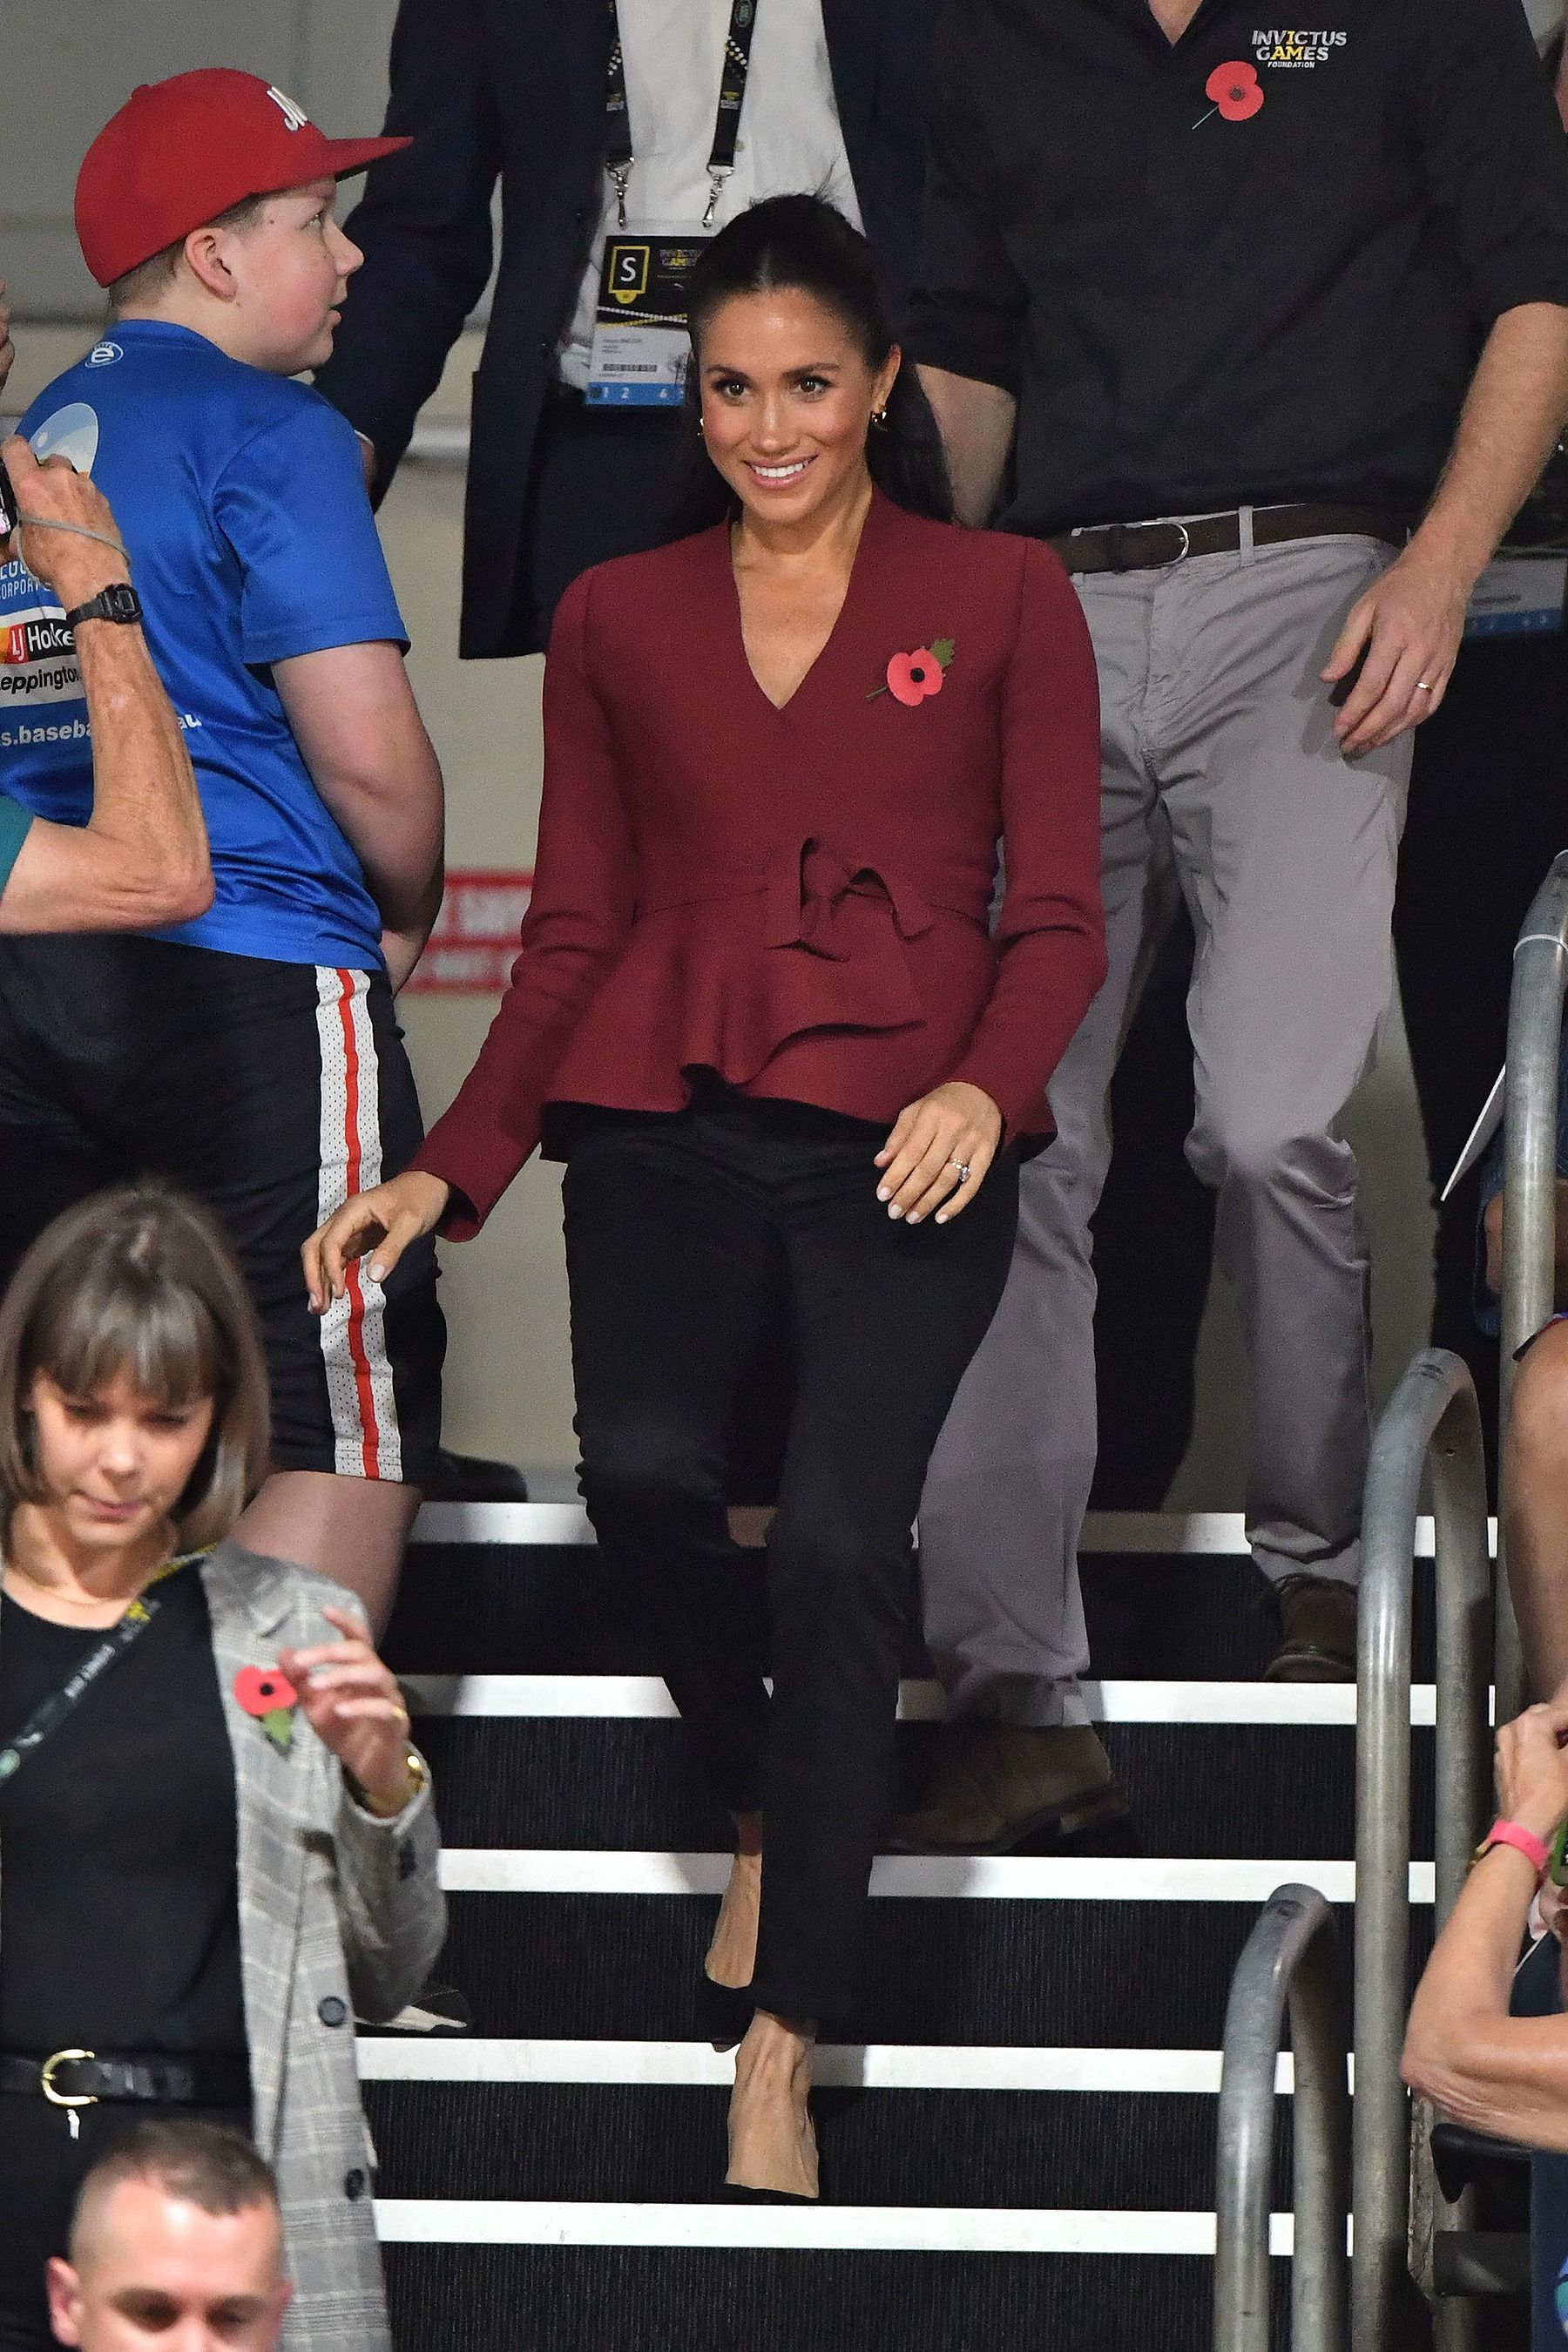 b9b370e7f55 Meghan Markle and Prince Harry Lead Cheering Section at Invictus ...